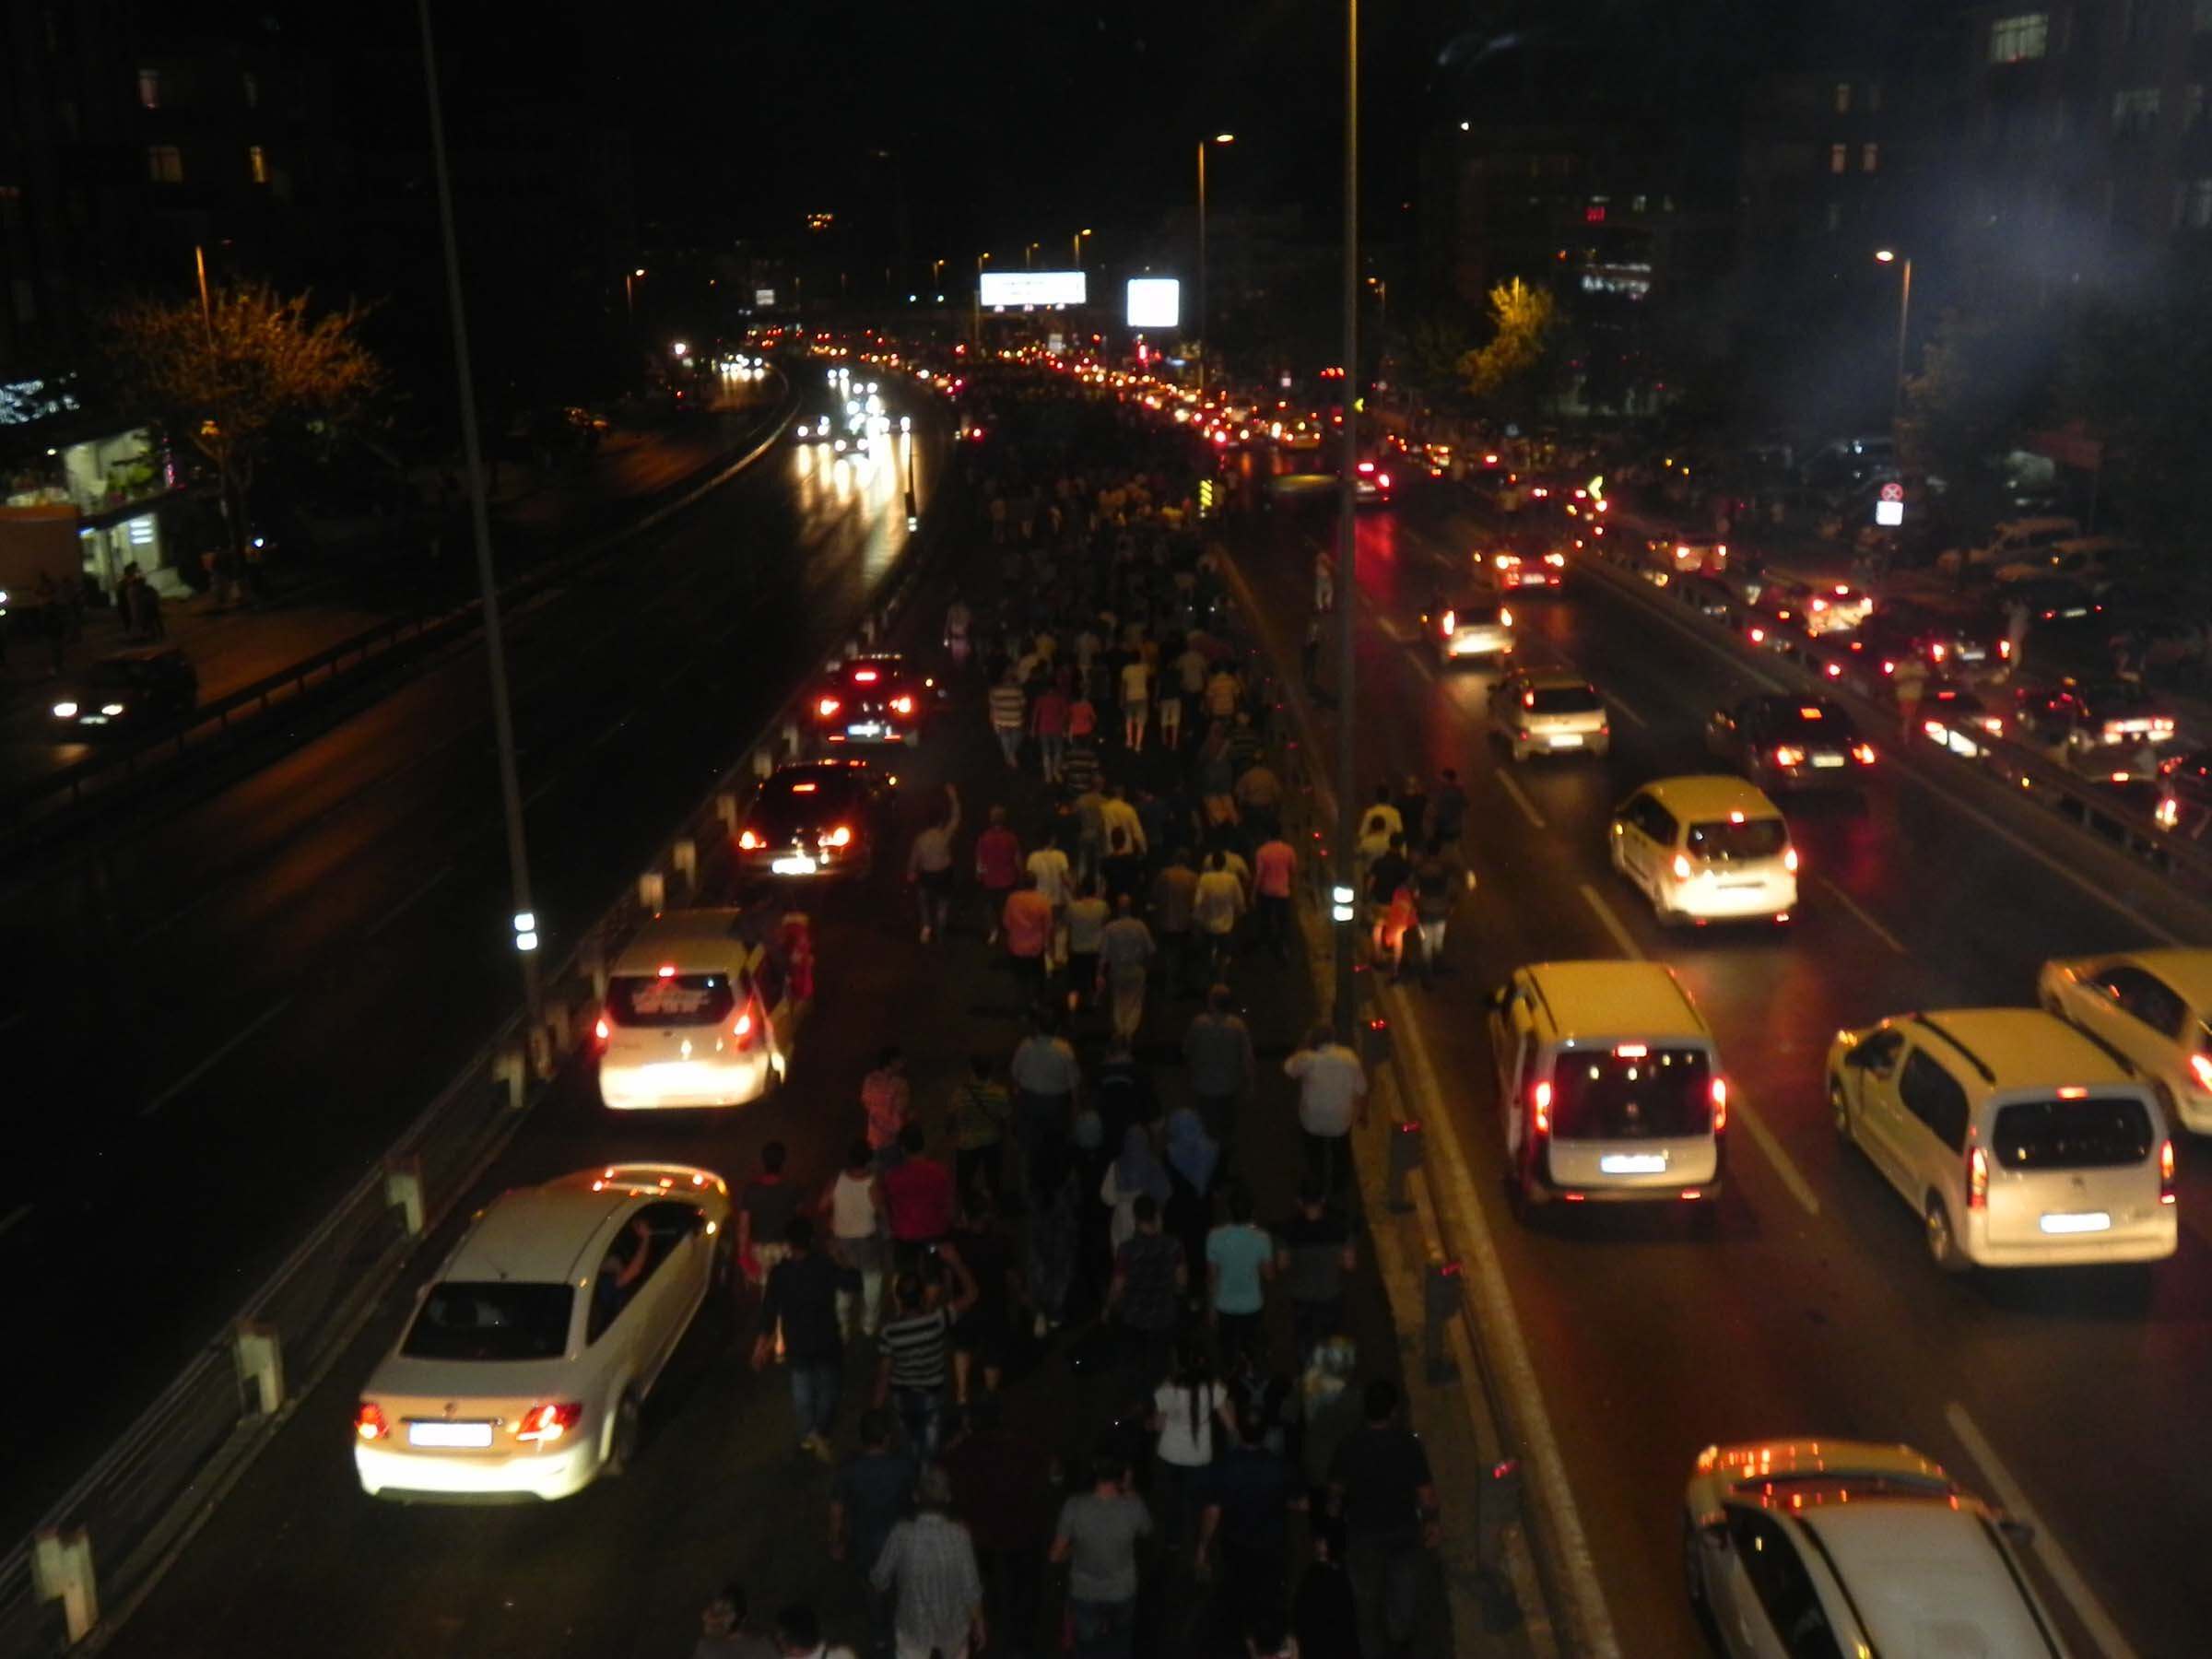 Upon the call from President Recep Tayyip Erdoğan, thousands of citizens began marching toward Atatürk Airport.